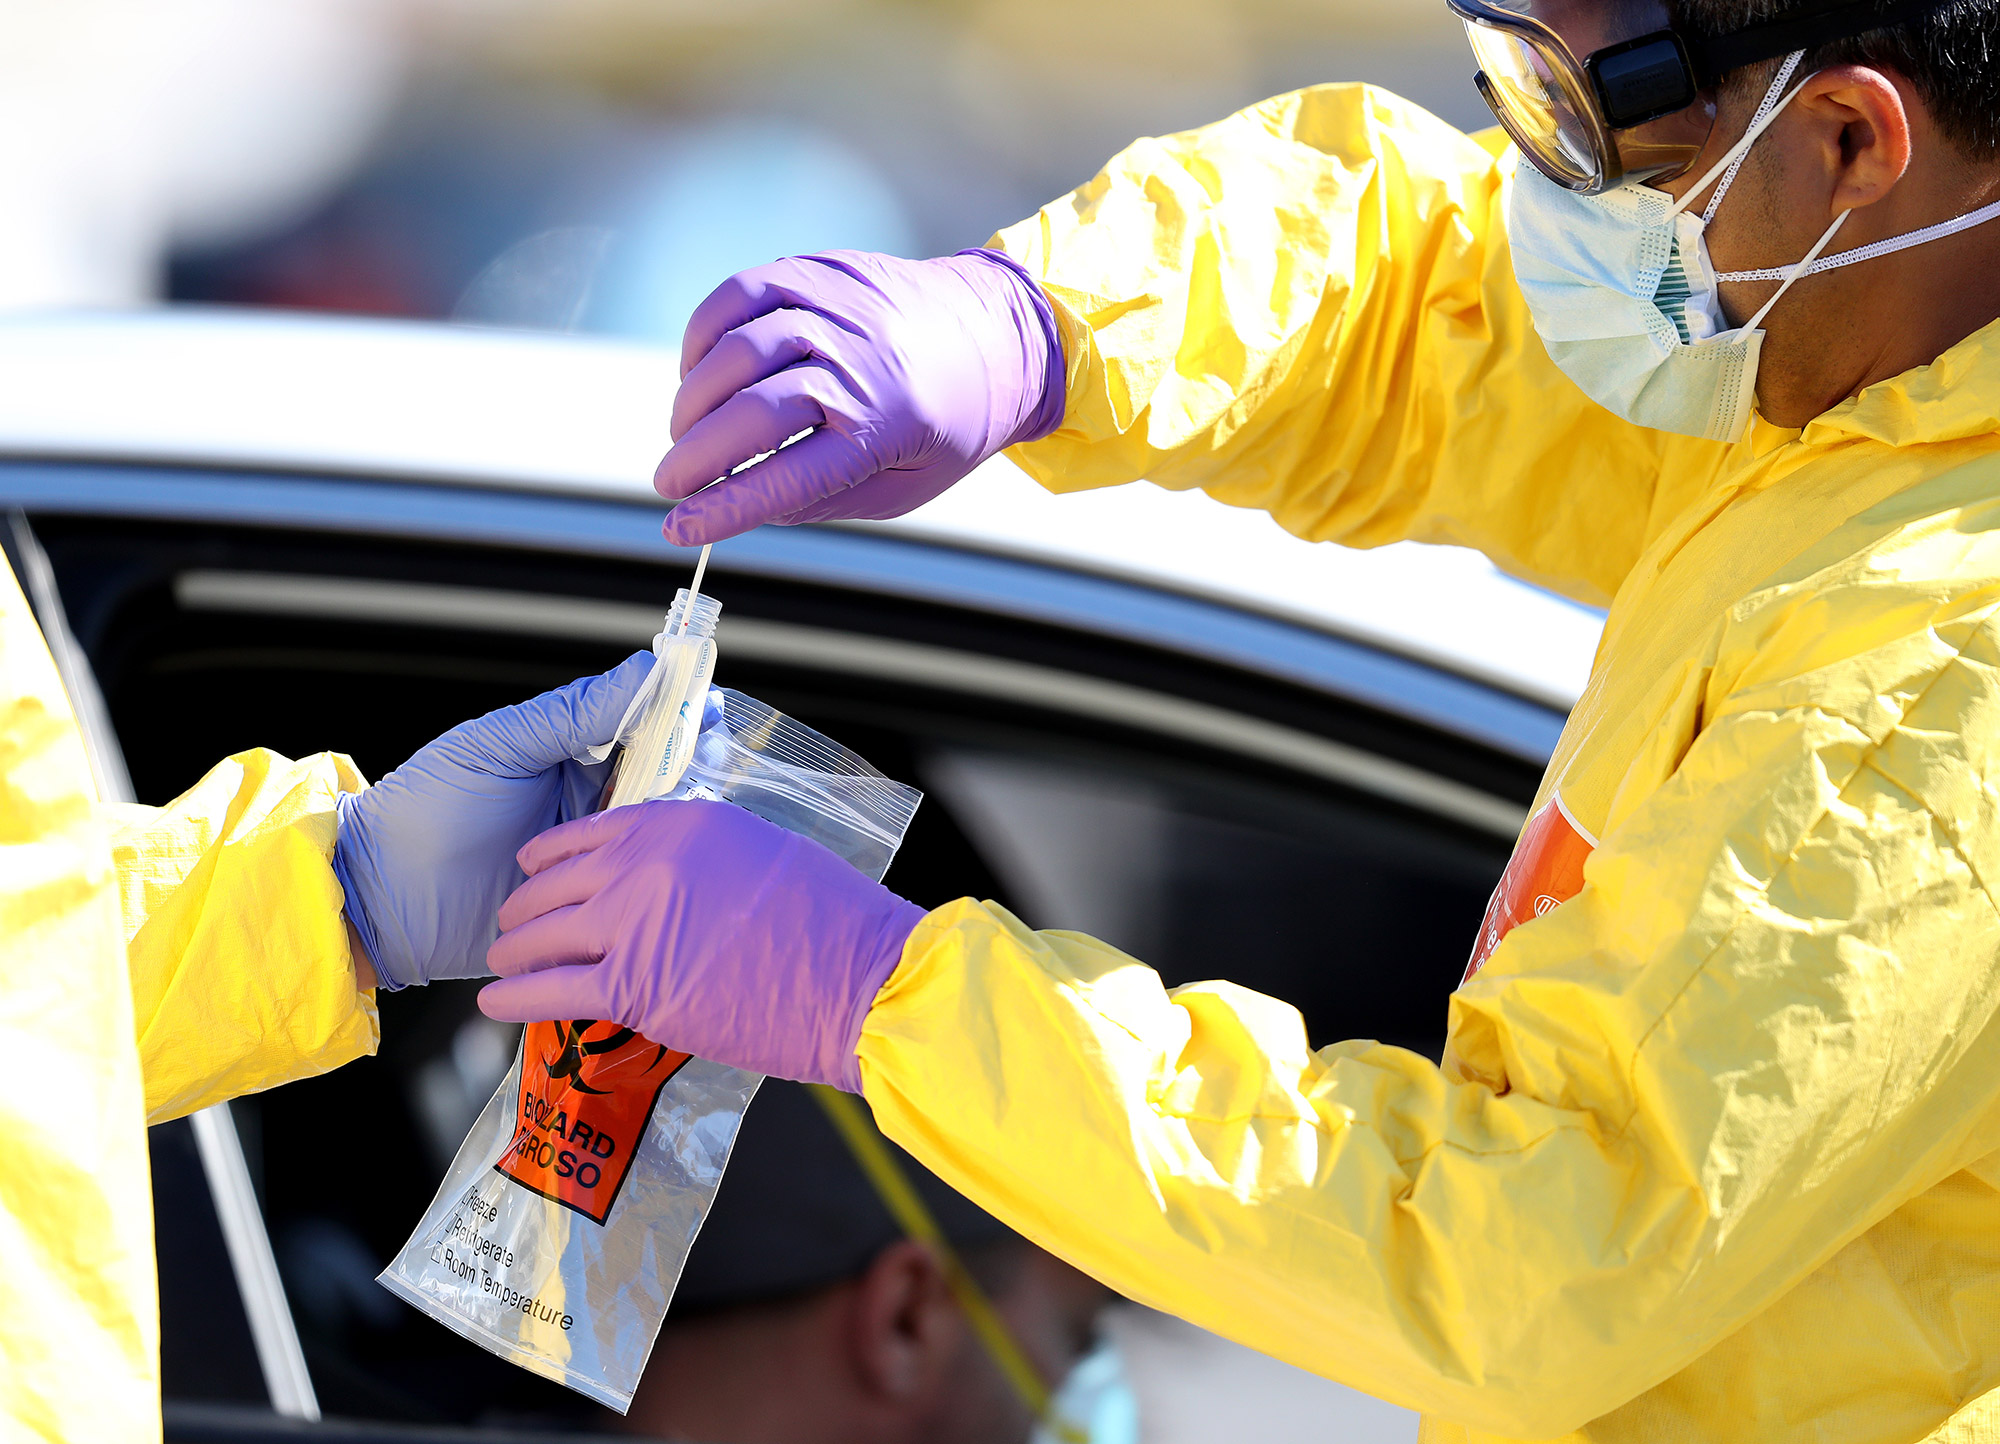 Coronavirus tests are administered at a drive-thru testing site in Jericho, New York, on April 6.